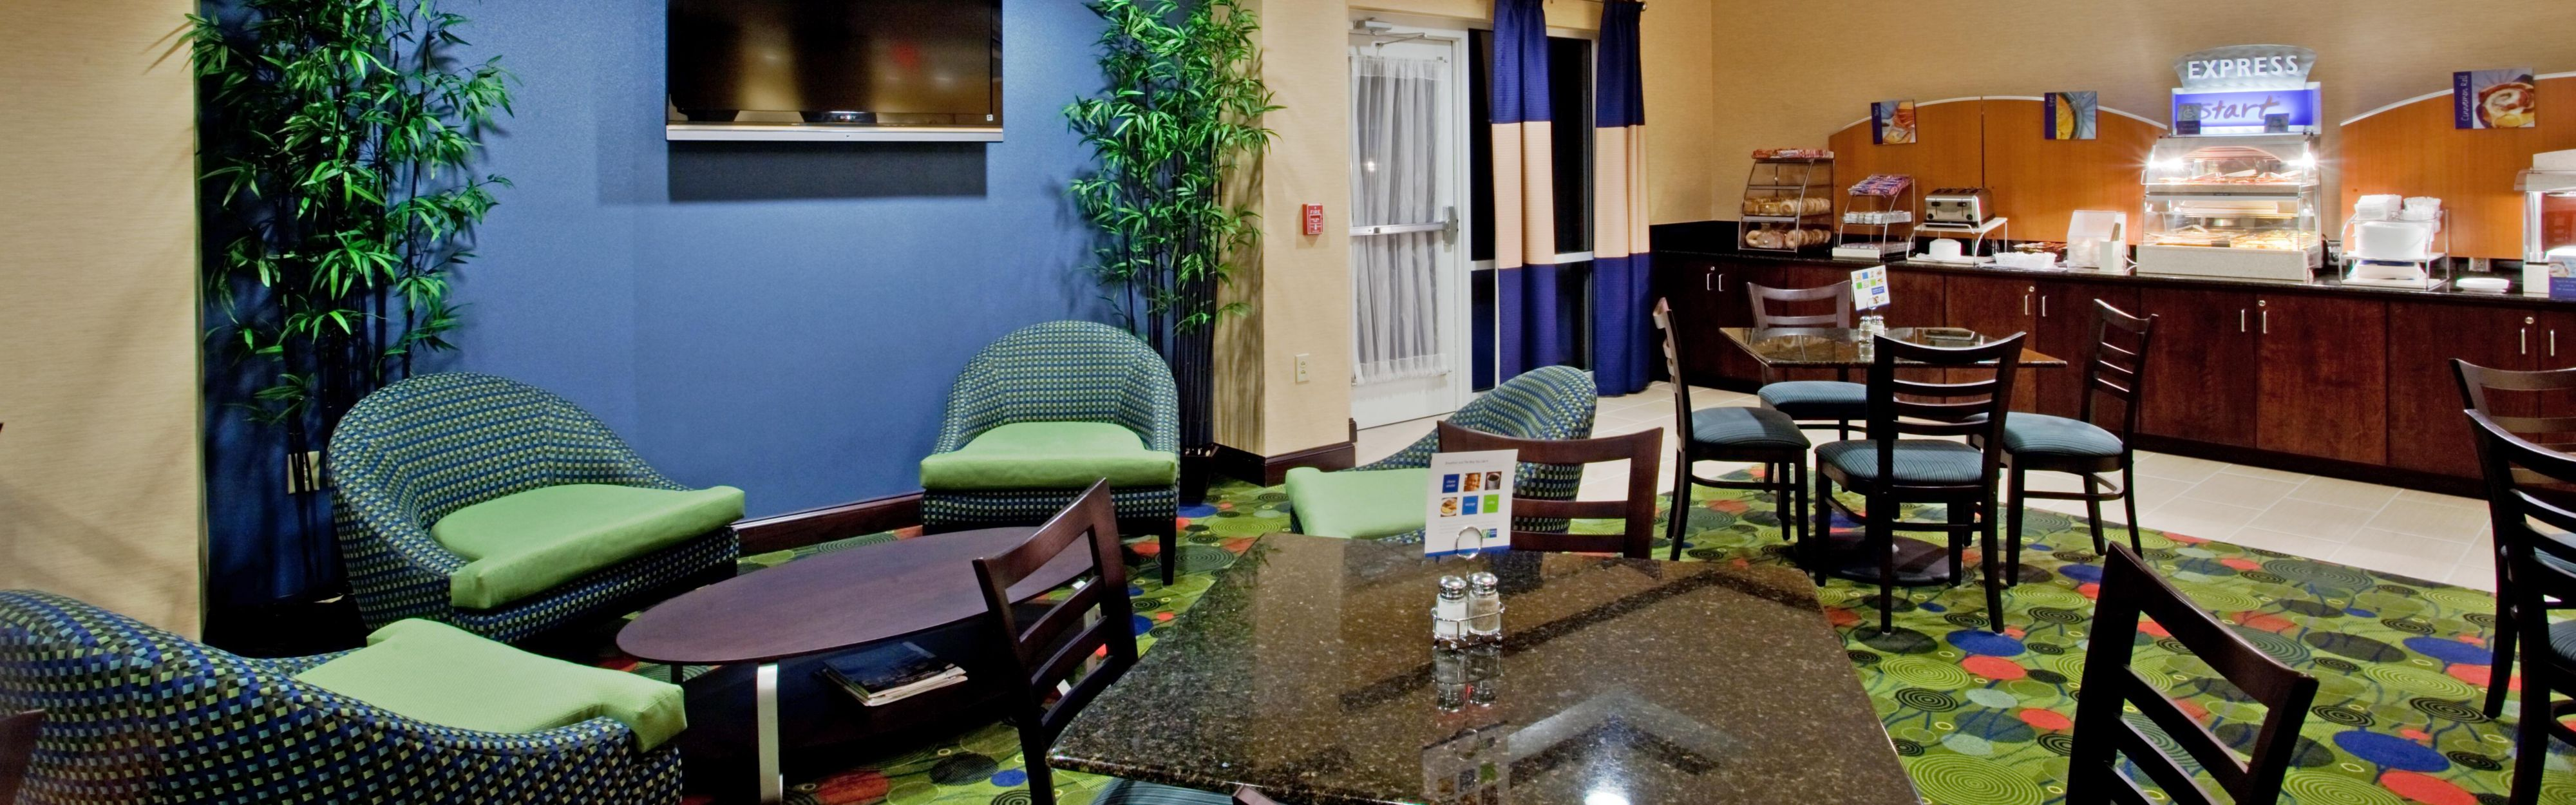 Holiday Inn Express & Suites Raleigh SW NC State image 3